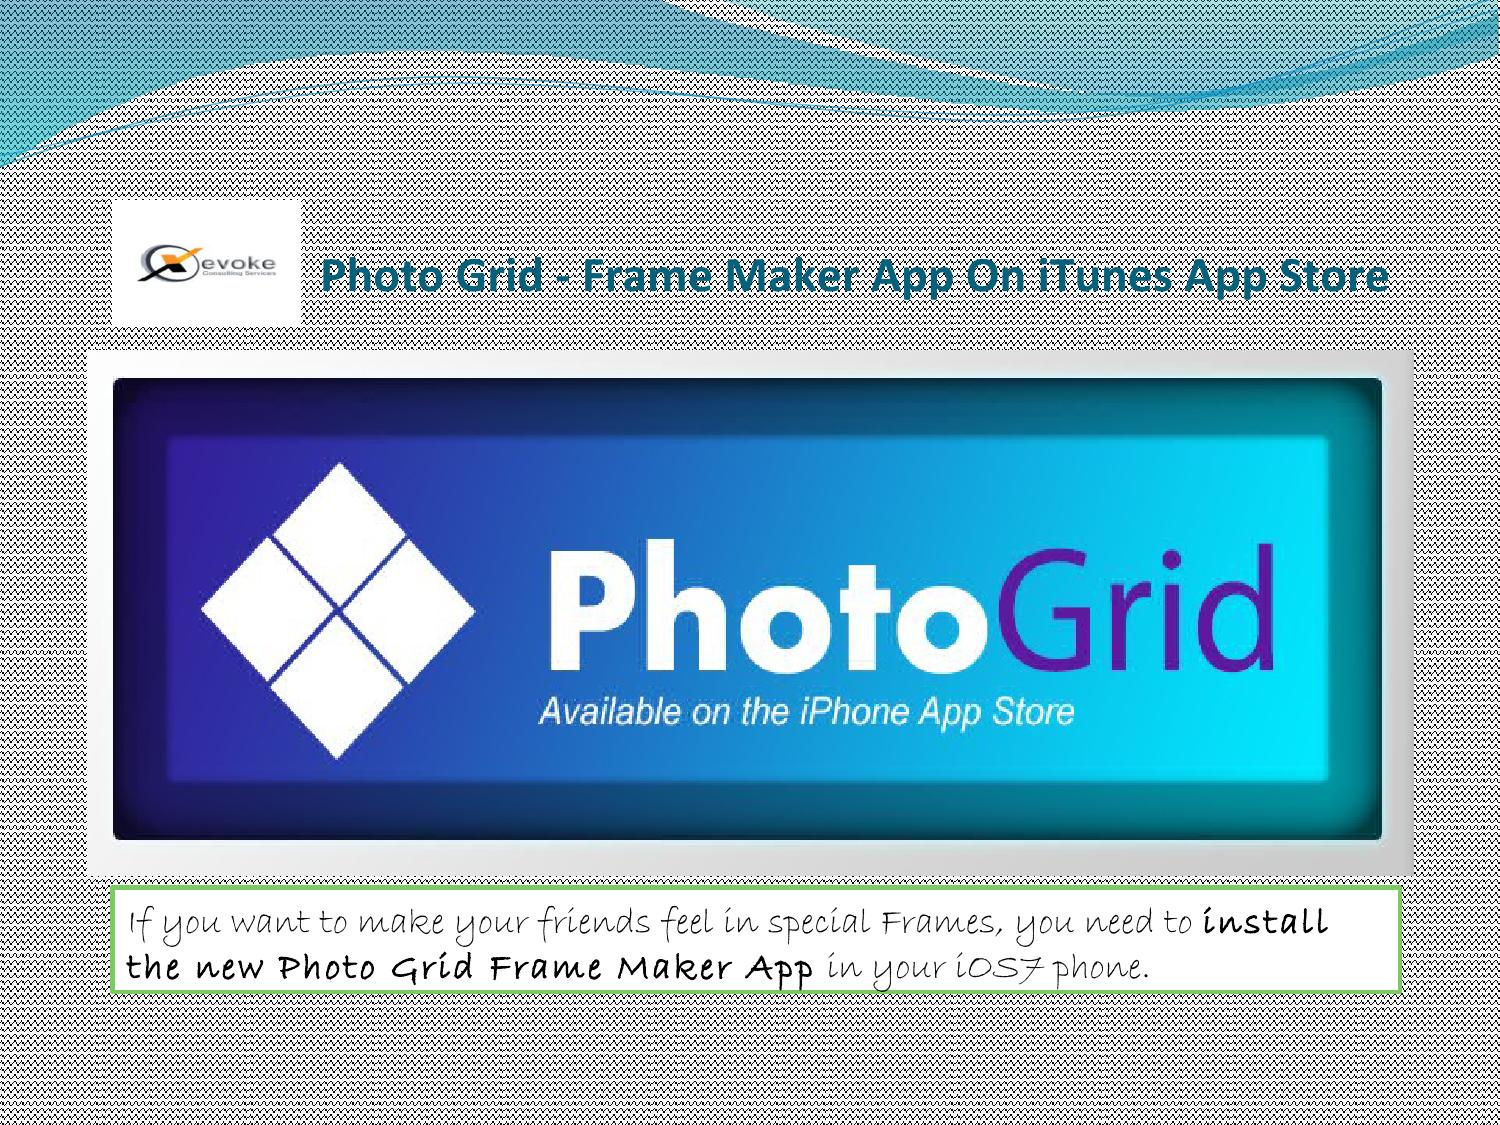 Photo grid frame maker by xevoke consulting services - issuu